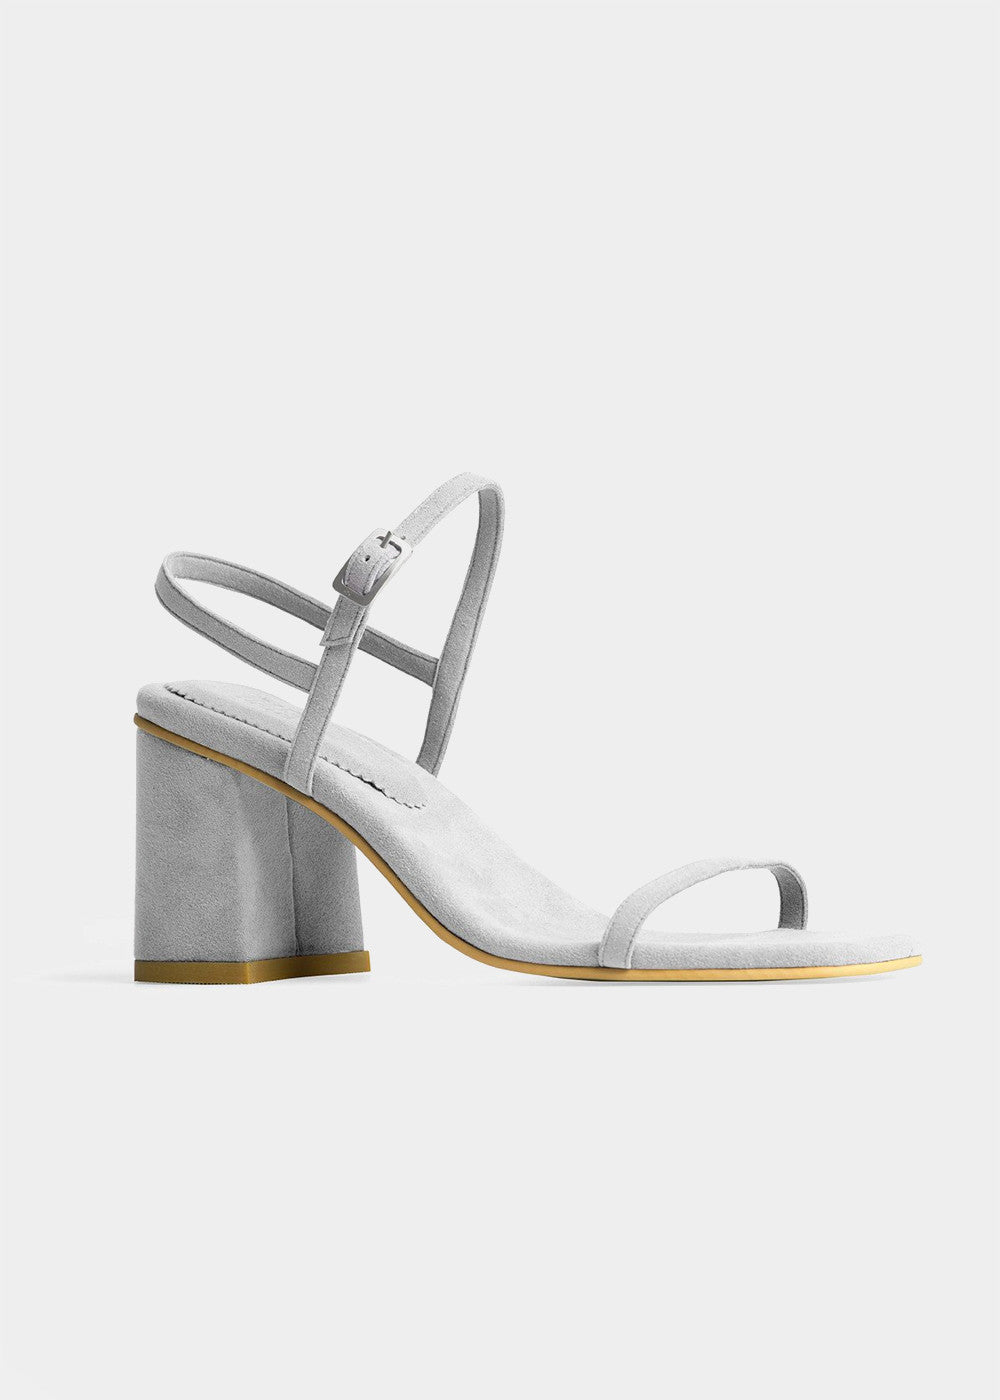 RAFA Simple Sandal in Cini — Shop sustainable fashion and slow fashion at New Classics Studios